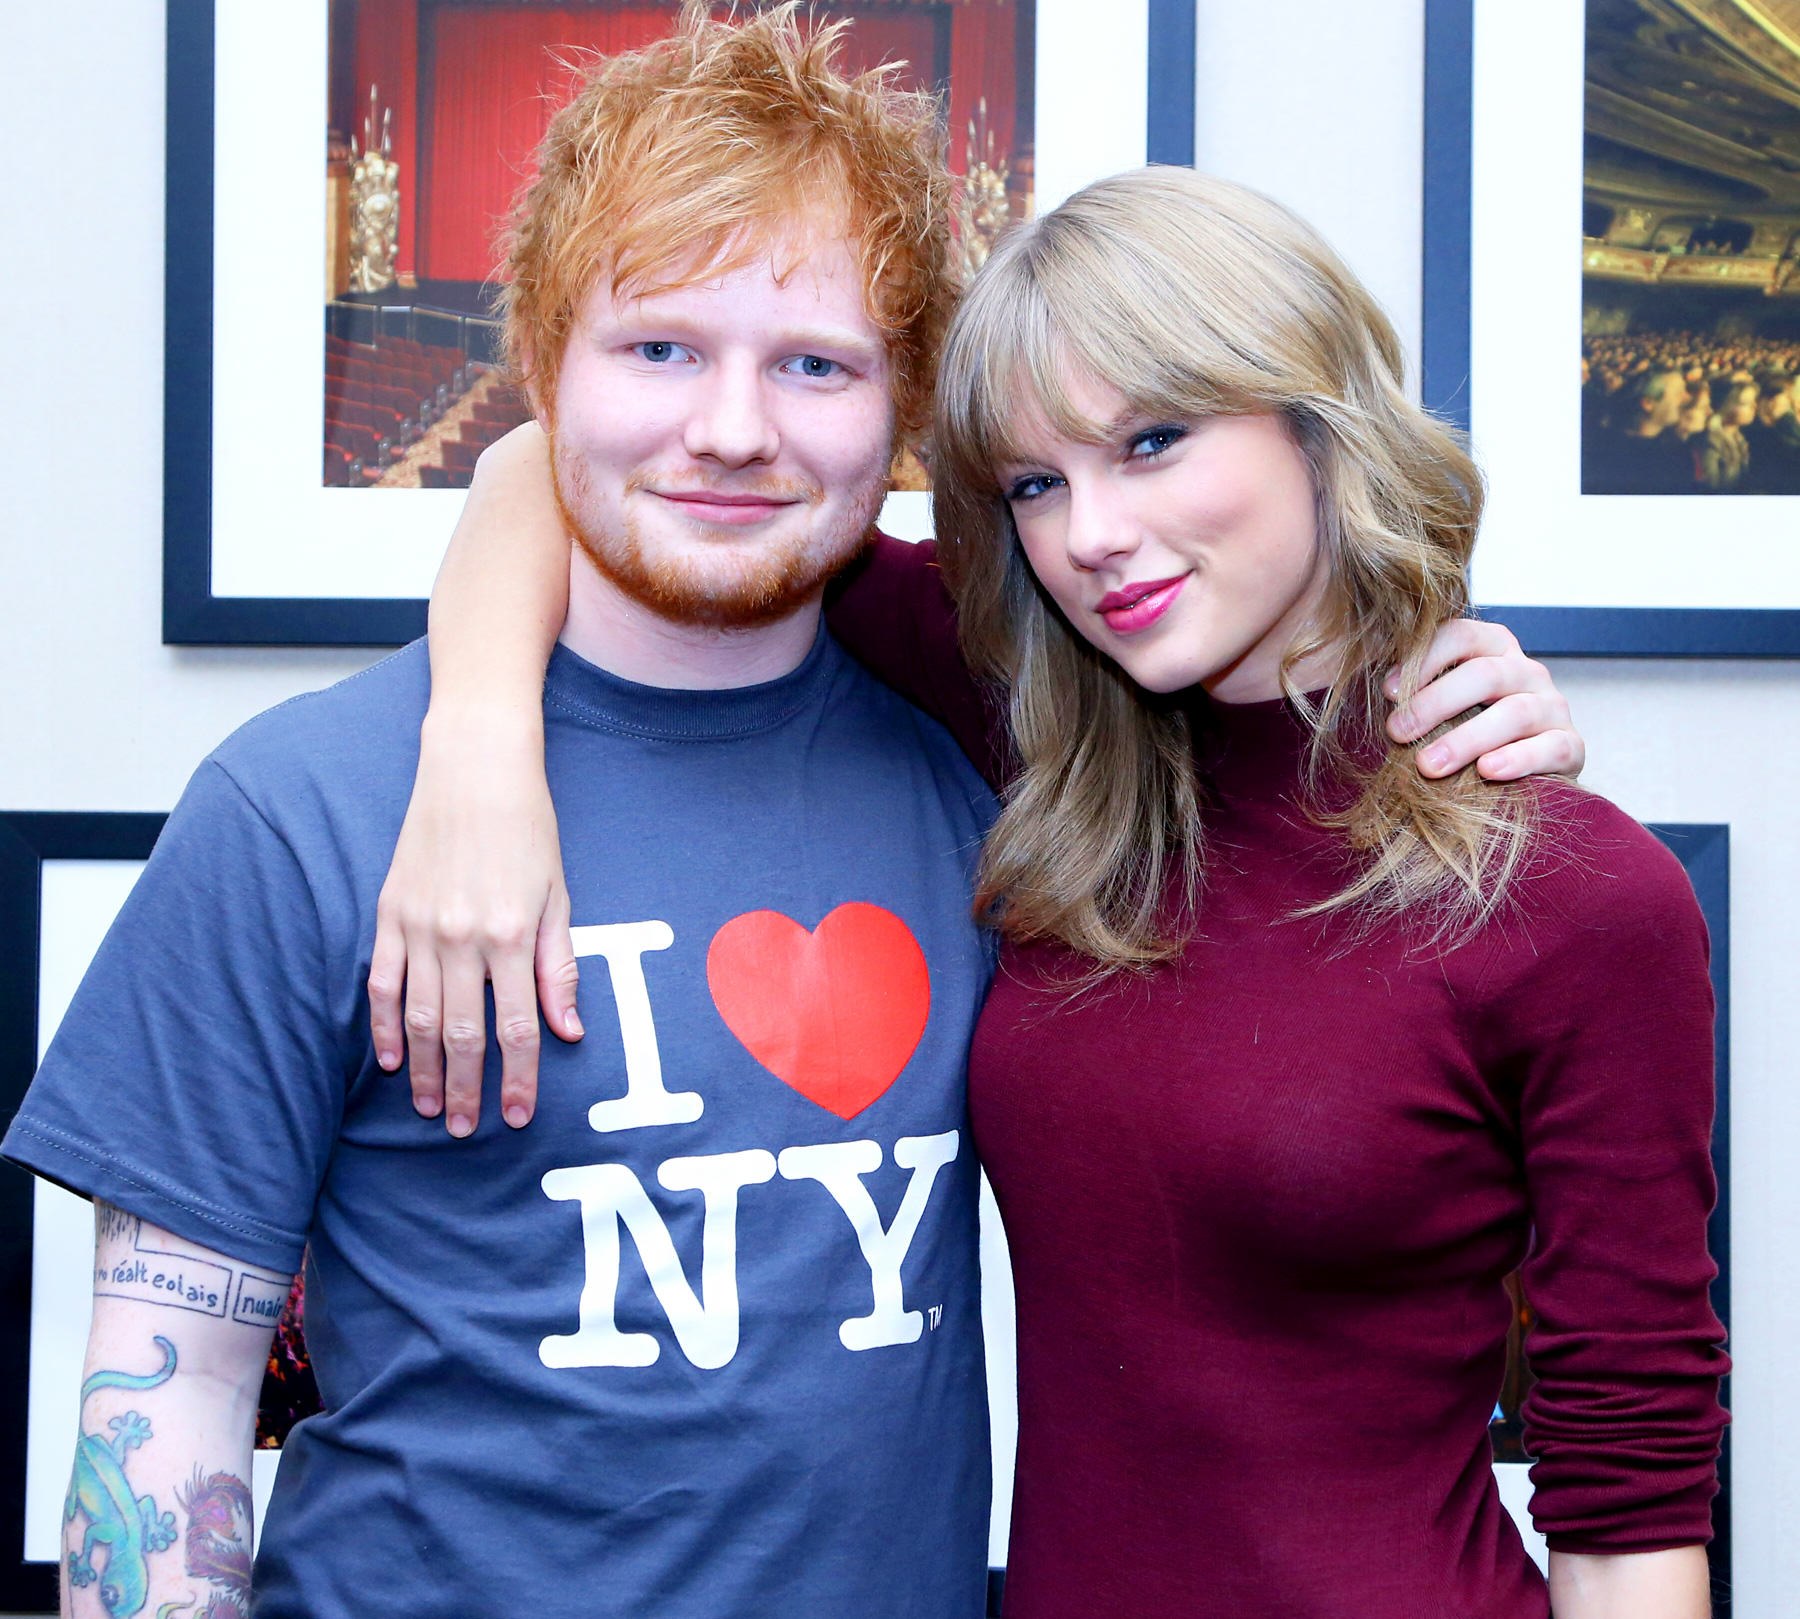 The 10 Most Talked About Topics On Facebook Of 2015 tswift and ed